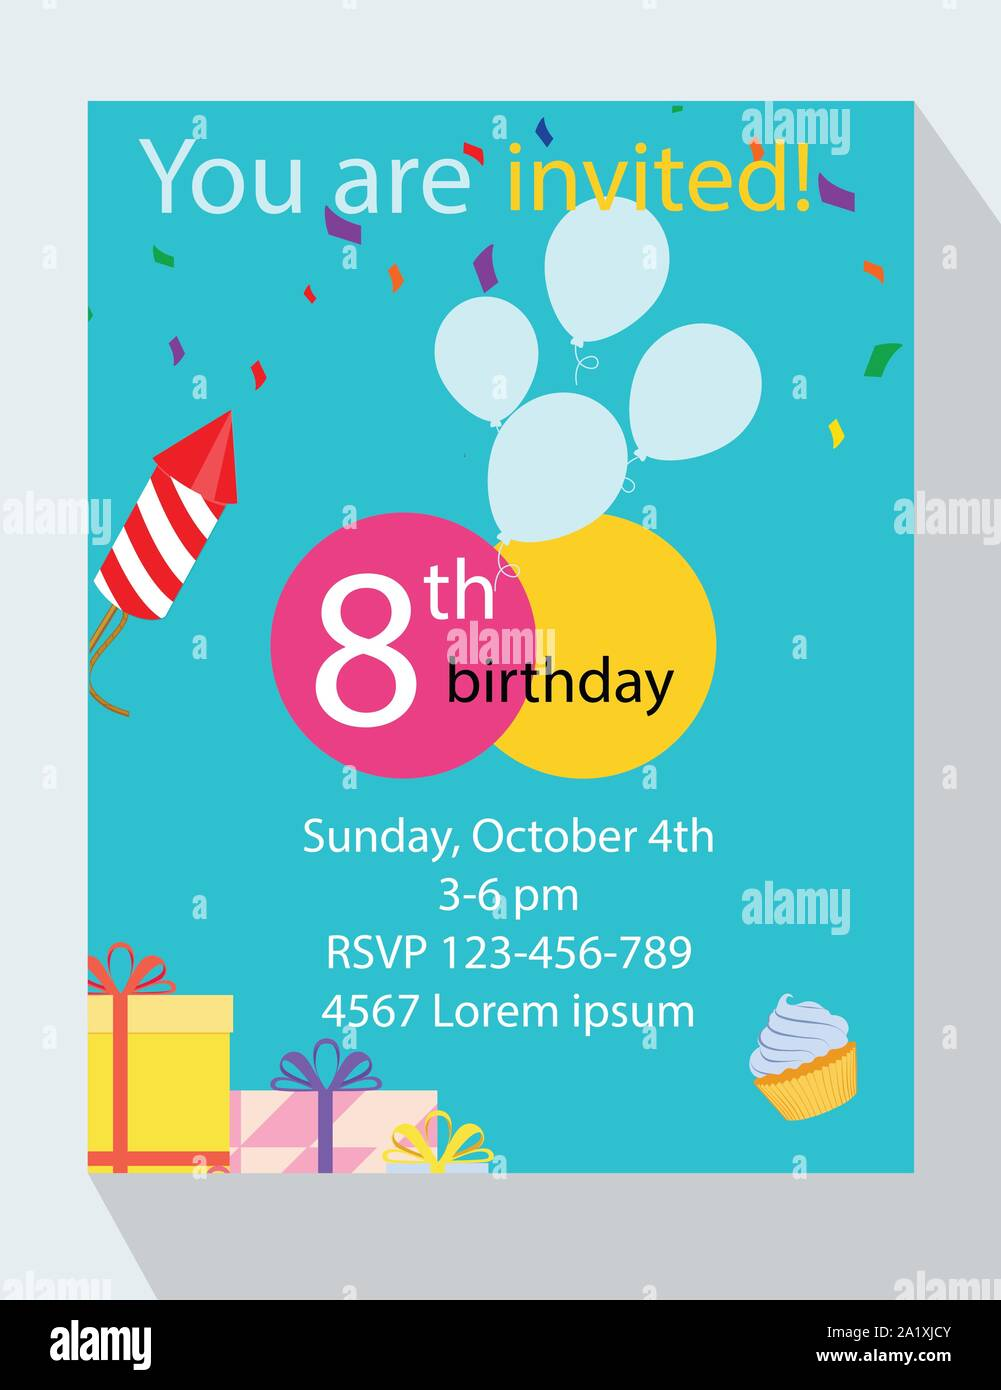 https www alamy com birthday party invitation card you are invited 8th birthday image328196875 html